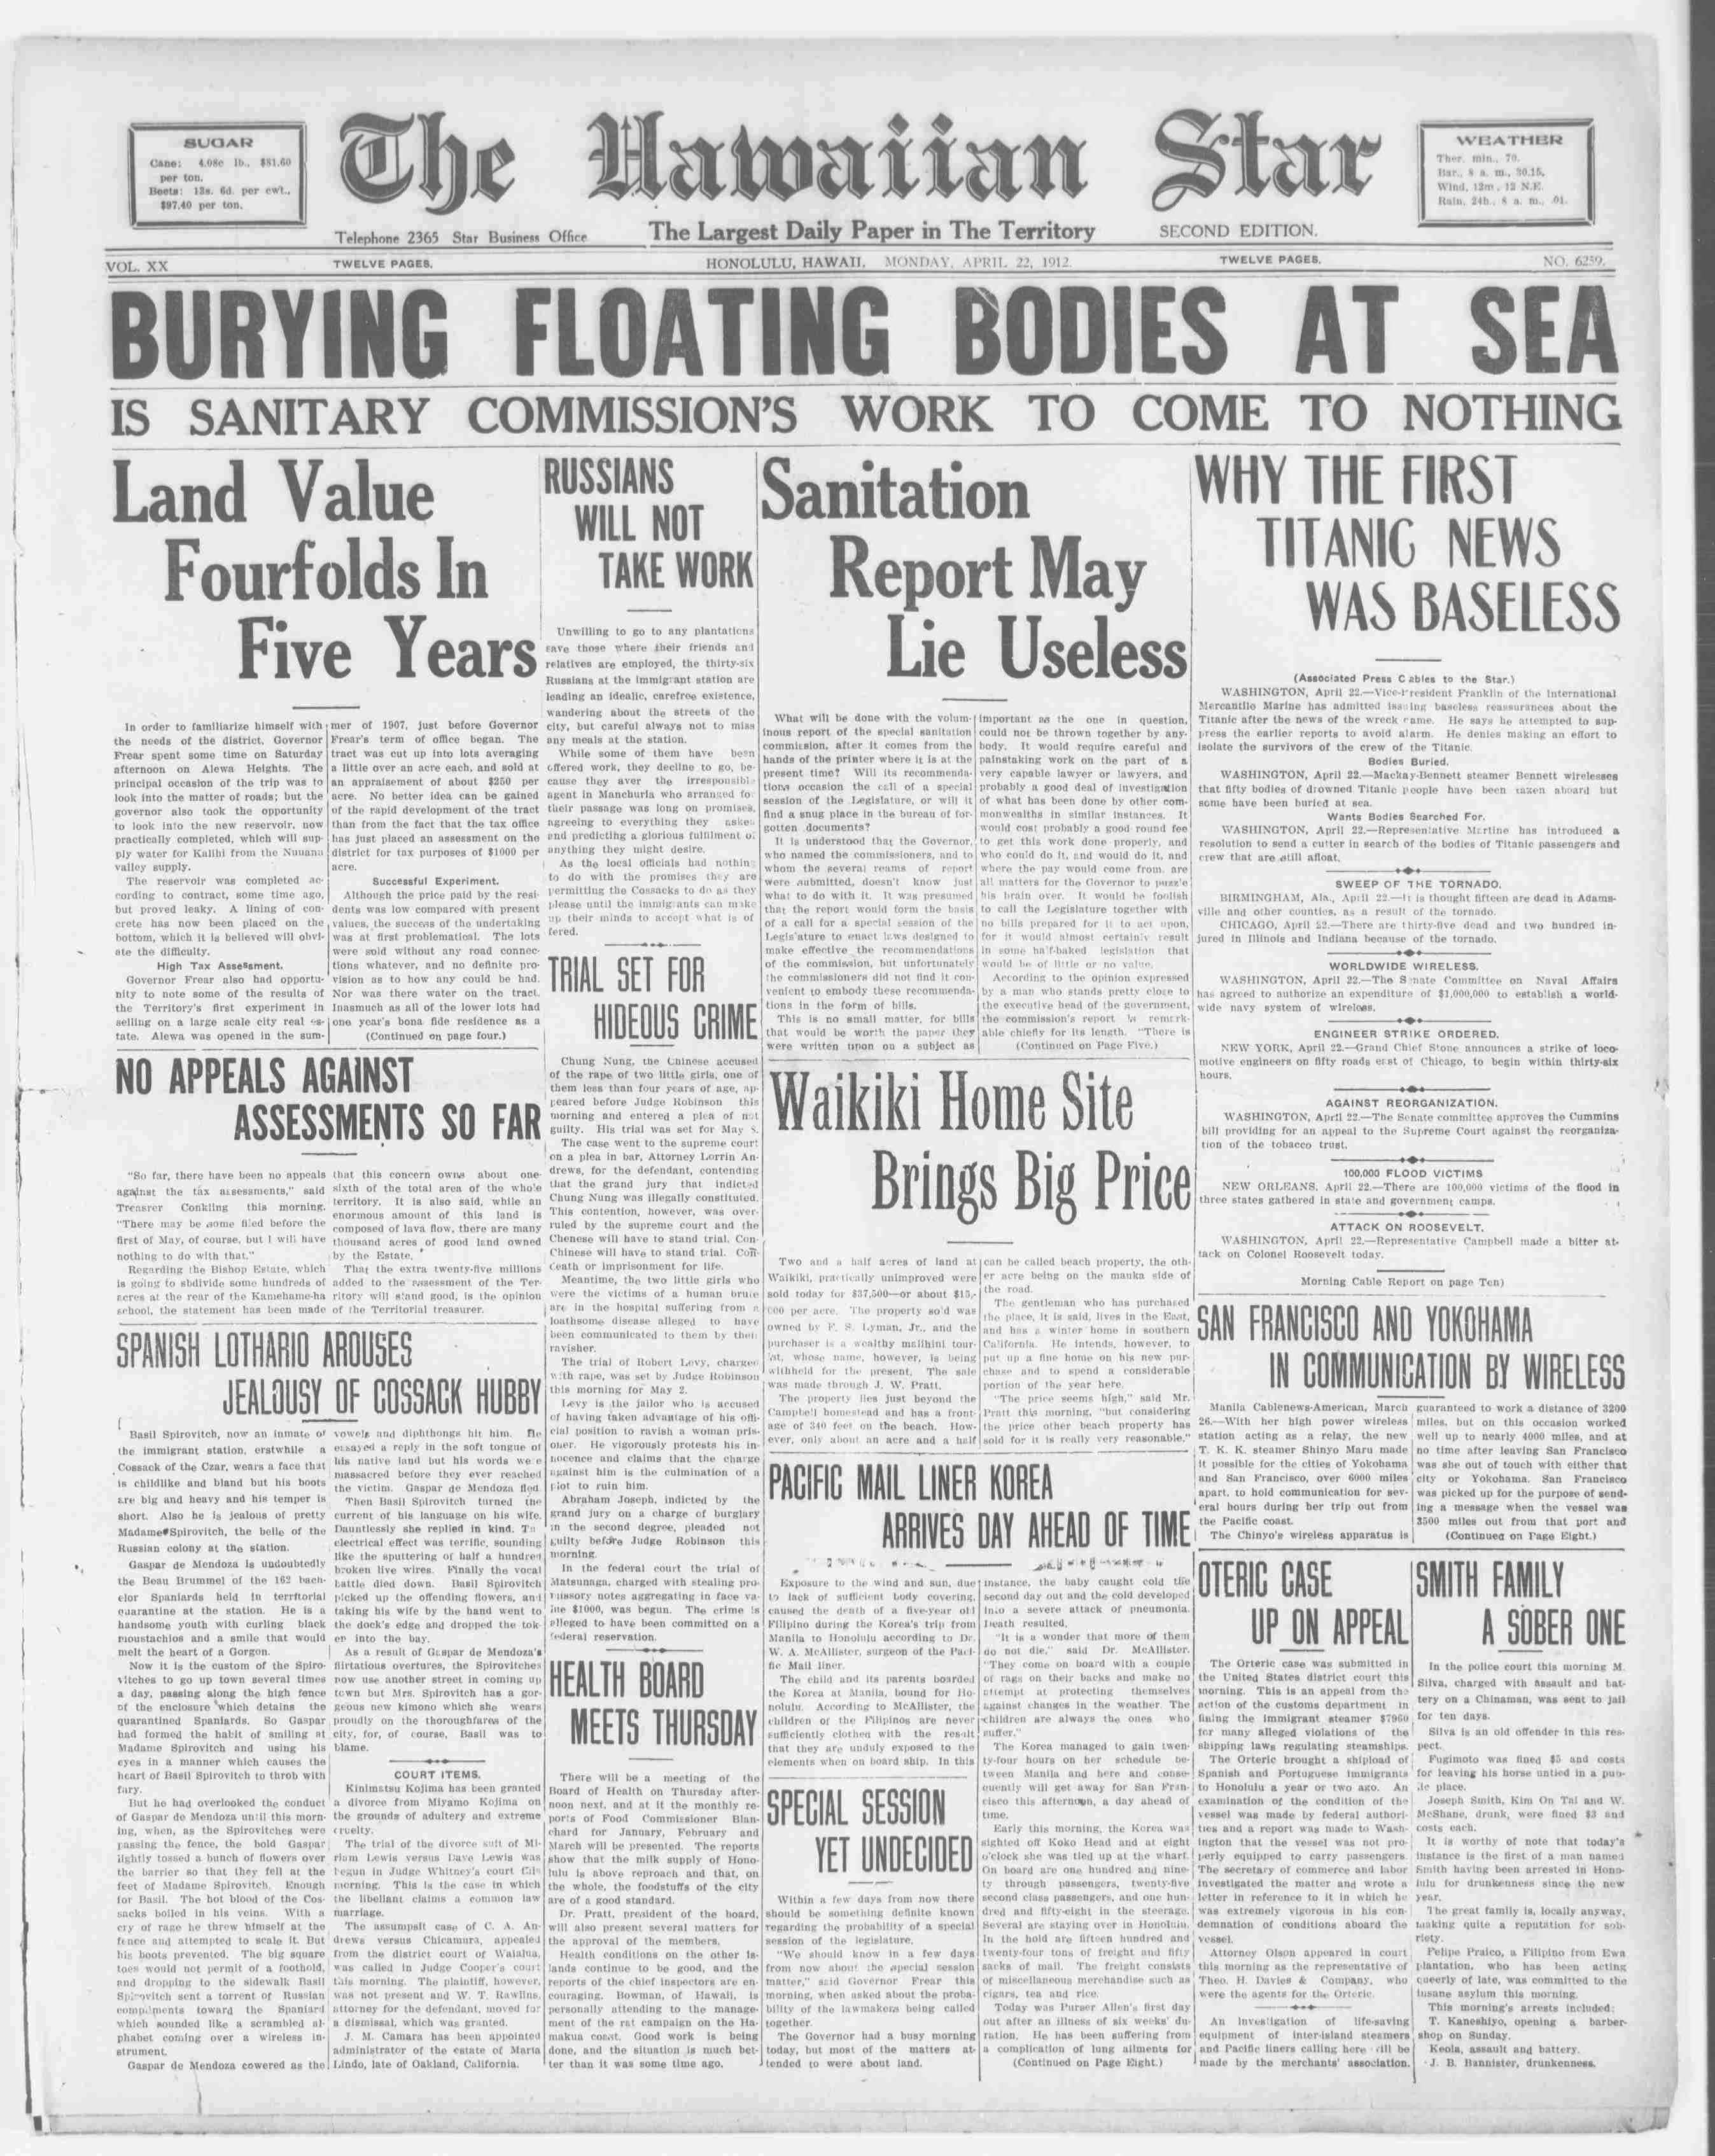 Titanic Newspaper Front Page 1912-04-22 The Hawaiian Star (Honolulu, HI), April 22, 1912, SECOND EDITION, Page 1